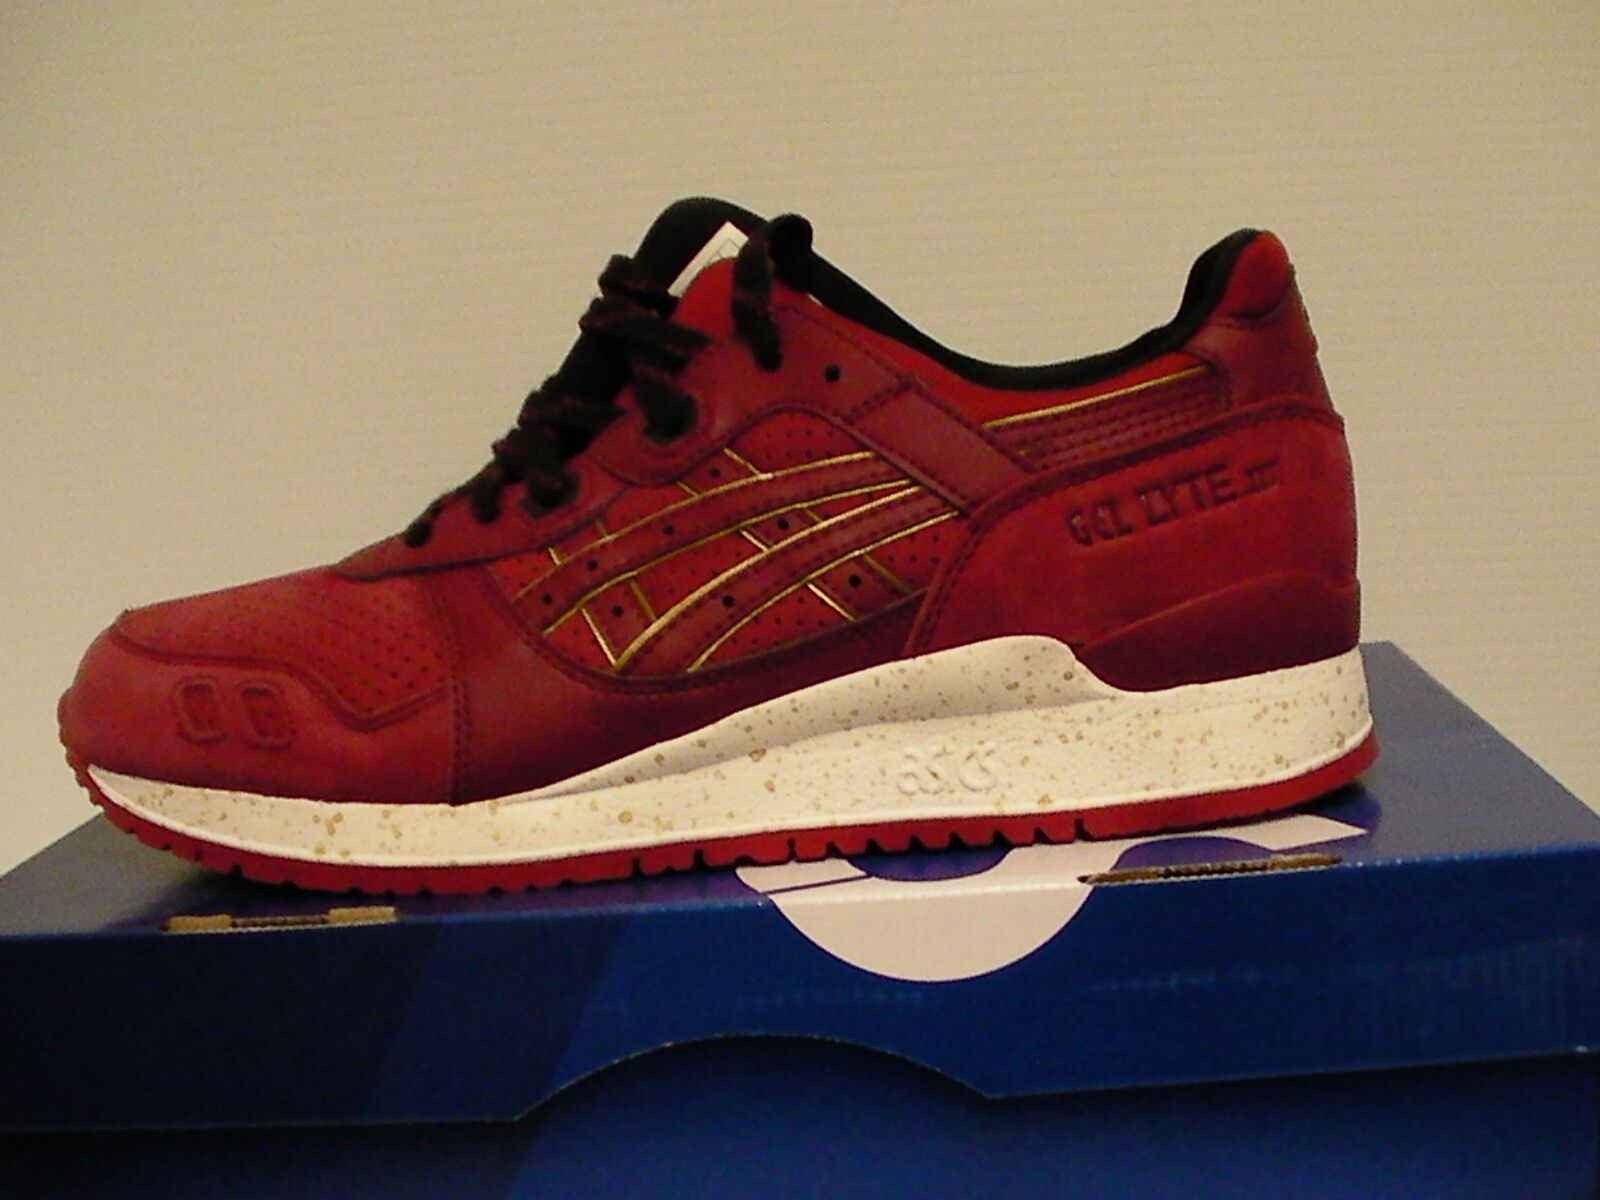 Asics running shoes gel-lyte iii size 8 us men burgundy/burgundy new with box